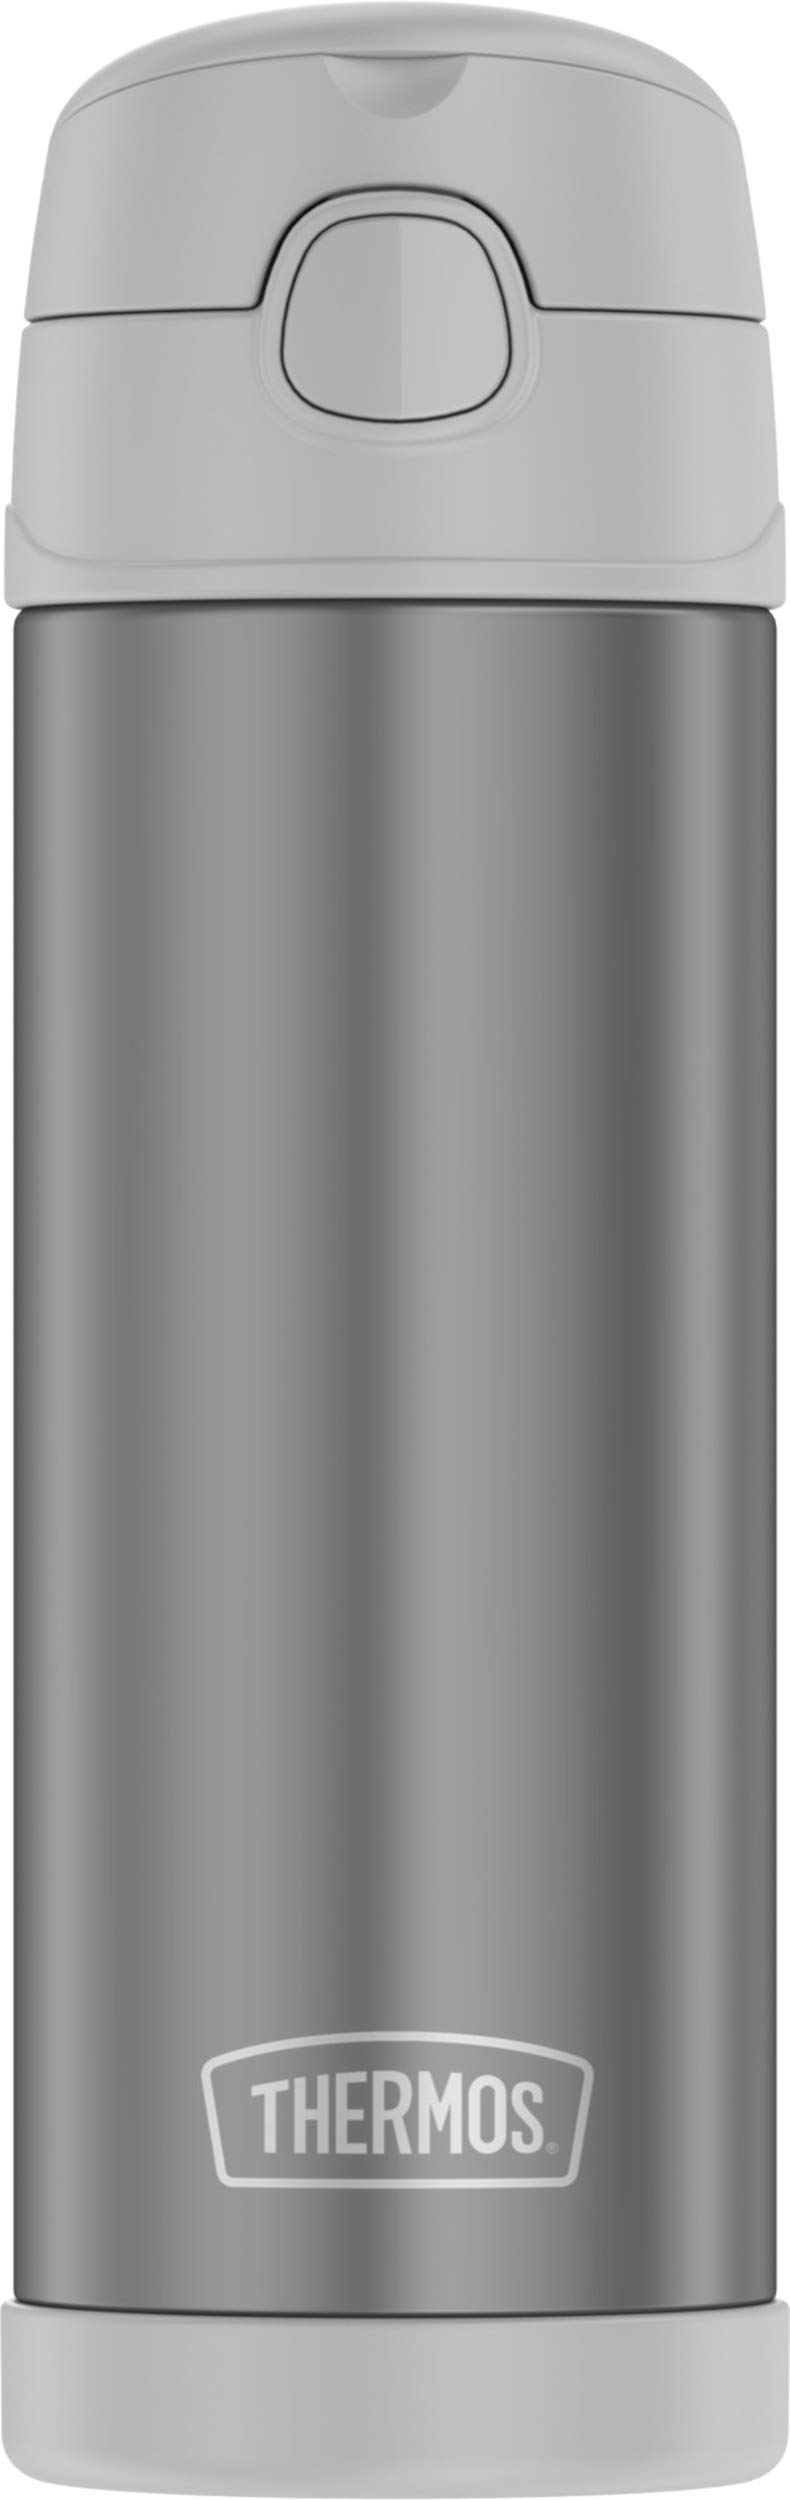 Thermos Funtainer 16 Ounce Bottle, Cool Gray